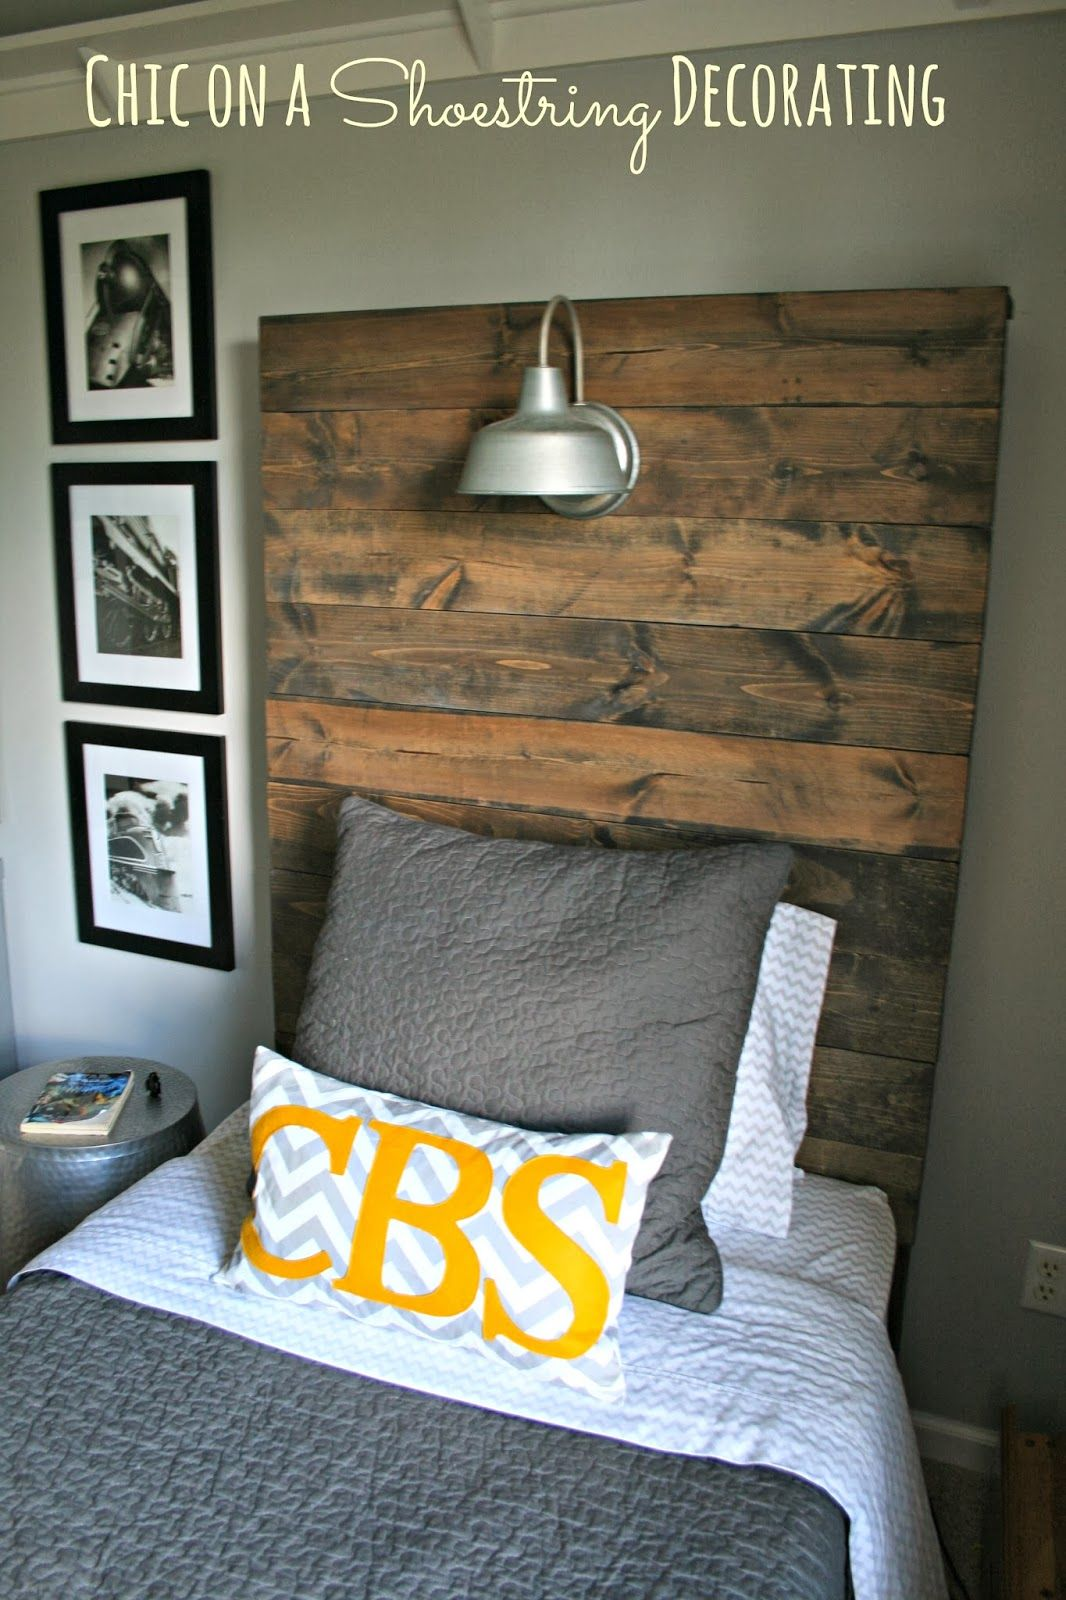 How To Build A Rustic Wooden Headboard With An Attached